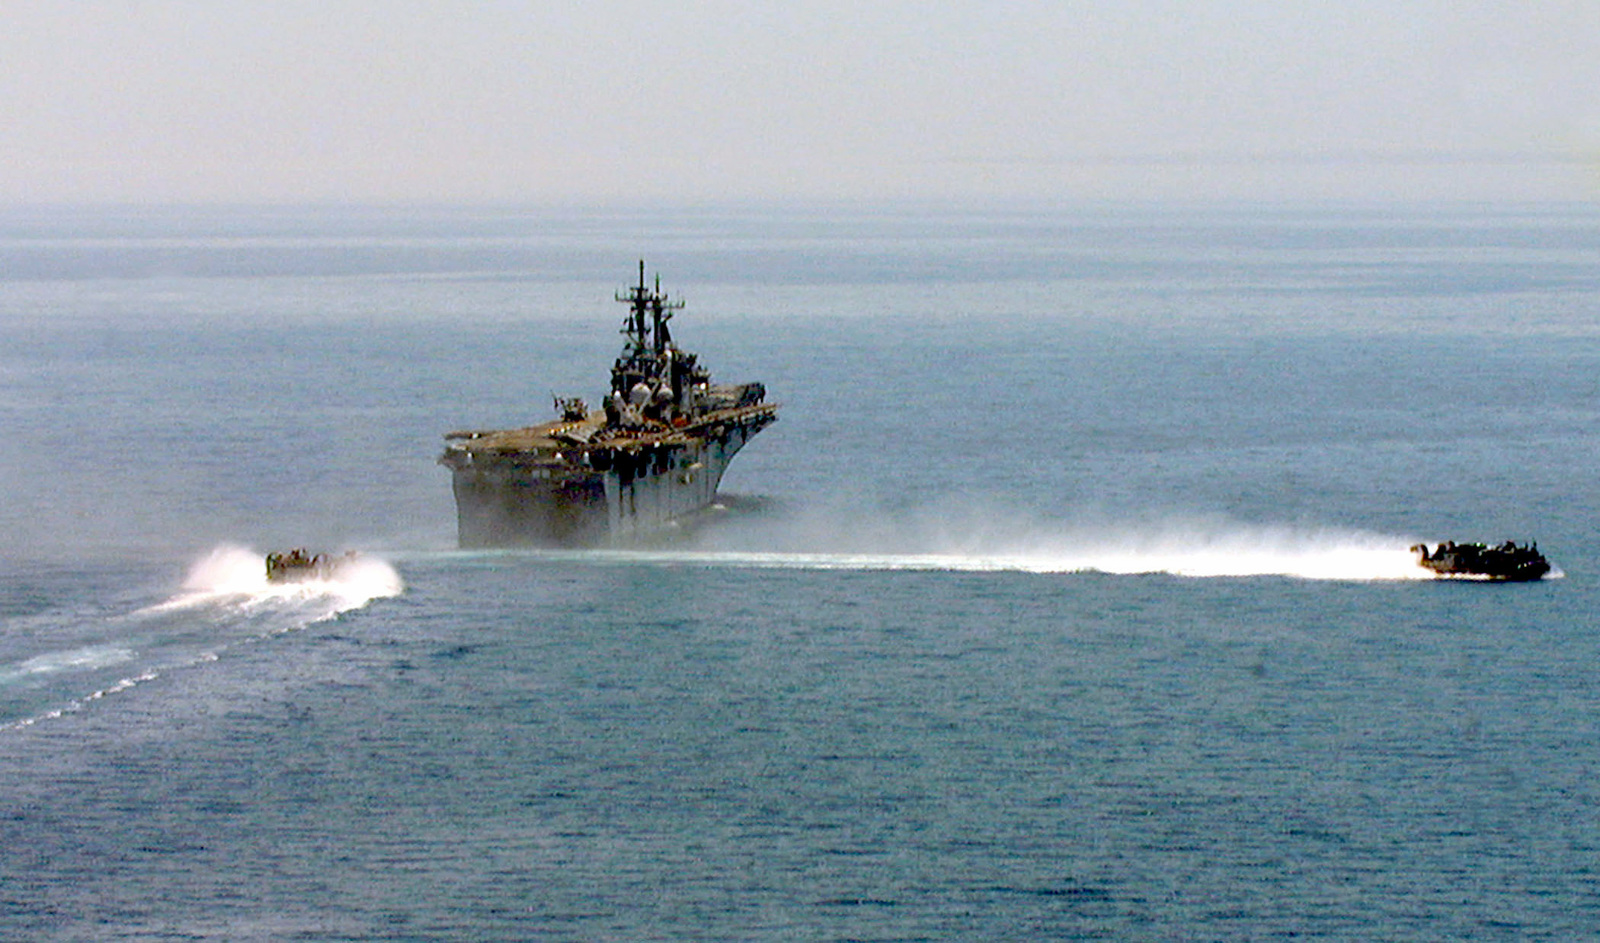 An Air Cushion Landing Craft (LCAC) leaves the well deck of the USS KEARSAGE (LHD 3) as another approaches to pick up more personnel and equipment from the 26th Marine Expeditionary Unit (MEU) and transport them to the beach at Litohoro, Greece. The first wave of Marines assigned to the 26th MEU arrived ashore in Litohoro during the early-morning hours in support of the NATO Peacekeeping Mission in Kosovo. The 26th MEU and USS KEARSAGE (LHD 3) Amphibious Ready Group are deployed in support of NATO Operation Allied Force